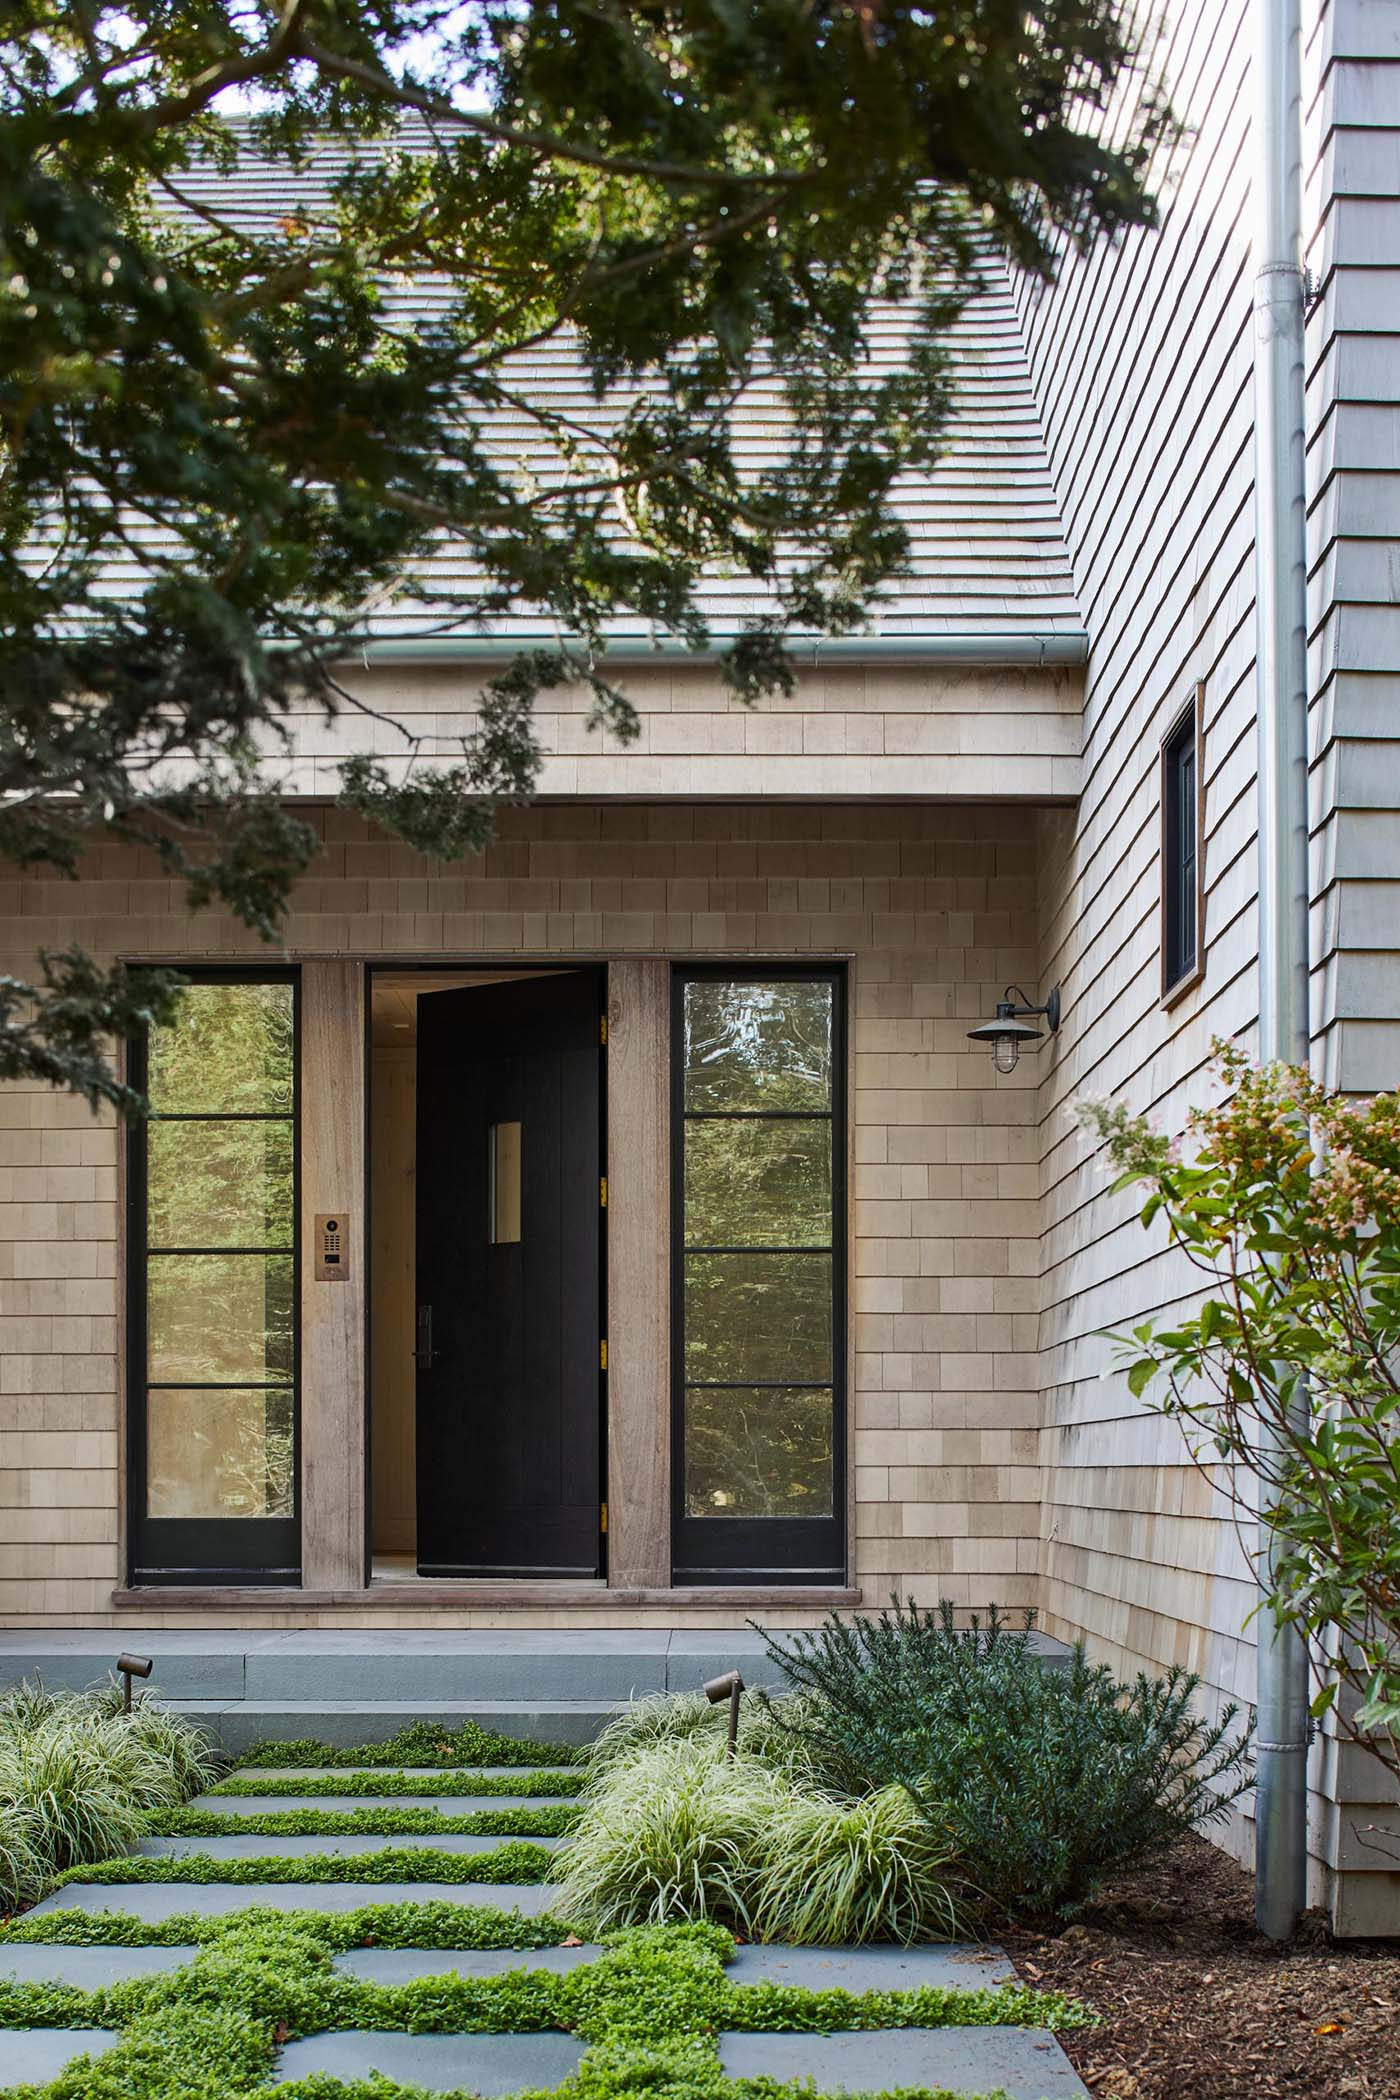 Welcoming visitors to this home is a custom designed front door crafted by a local mill worker.